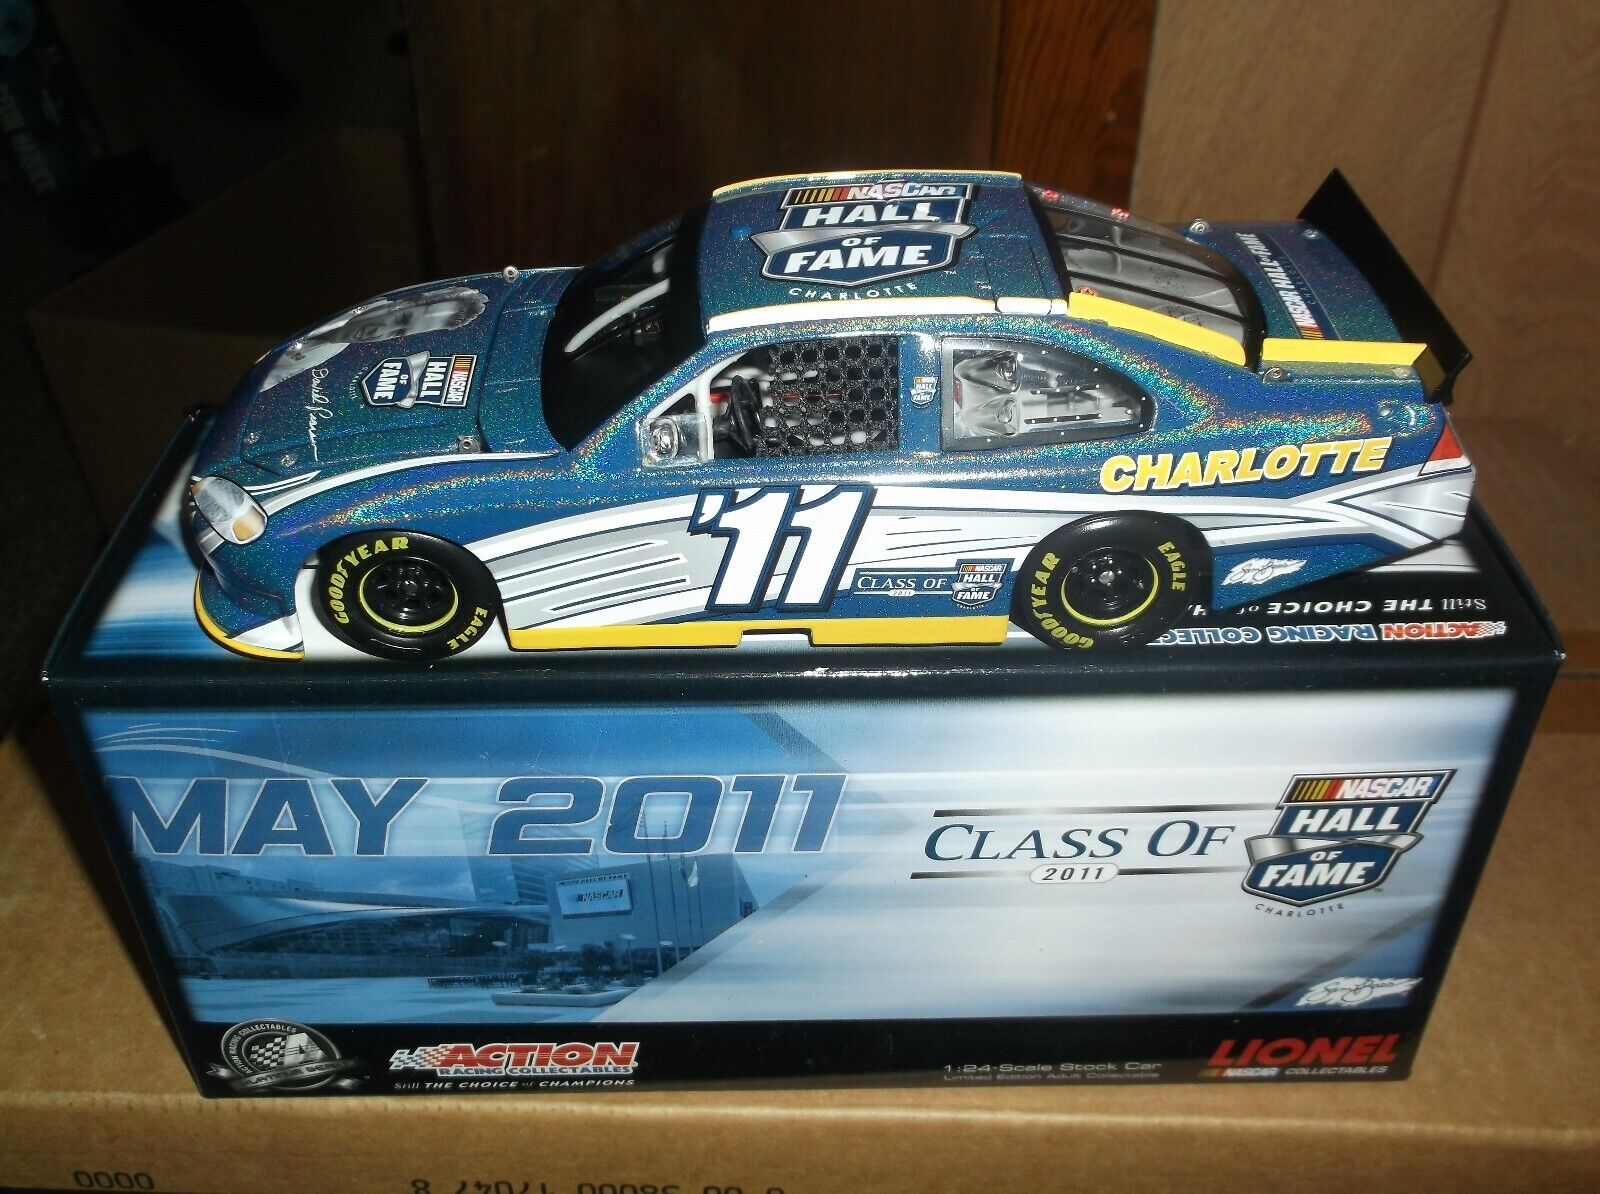 RARE 2011 DAVID PEARSON HALL OF FAME FLASHCOAT Coloreee 1 24TH SCALE DIECAST